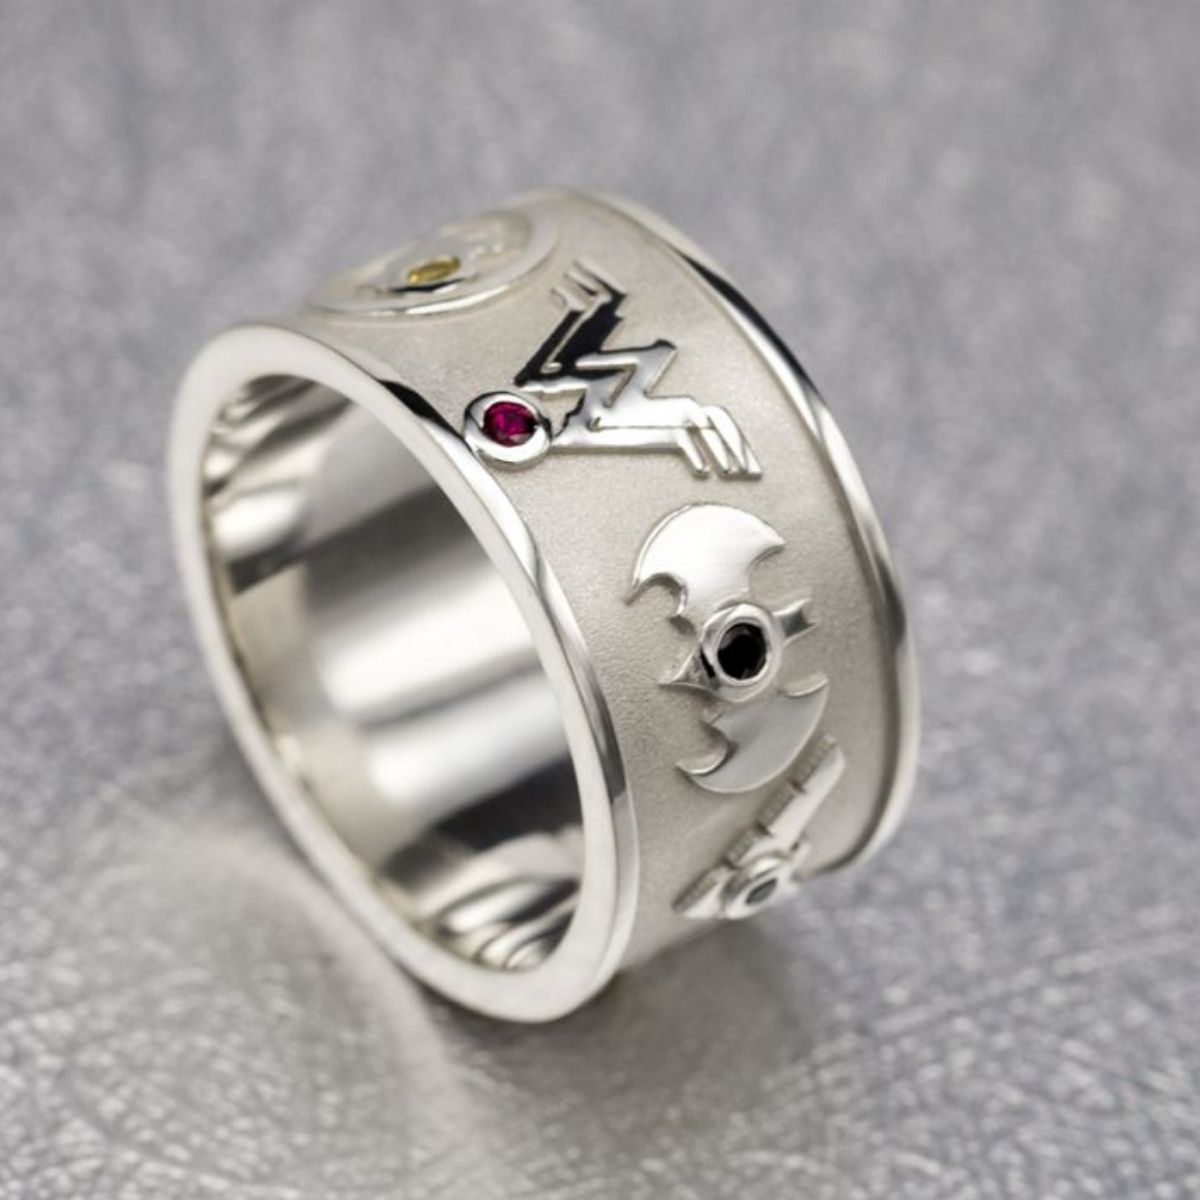 Geeky wedding bands